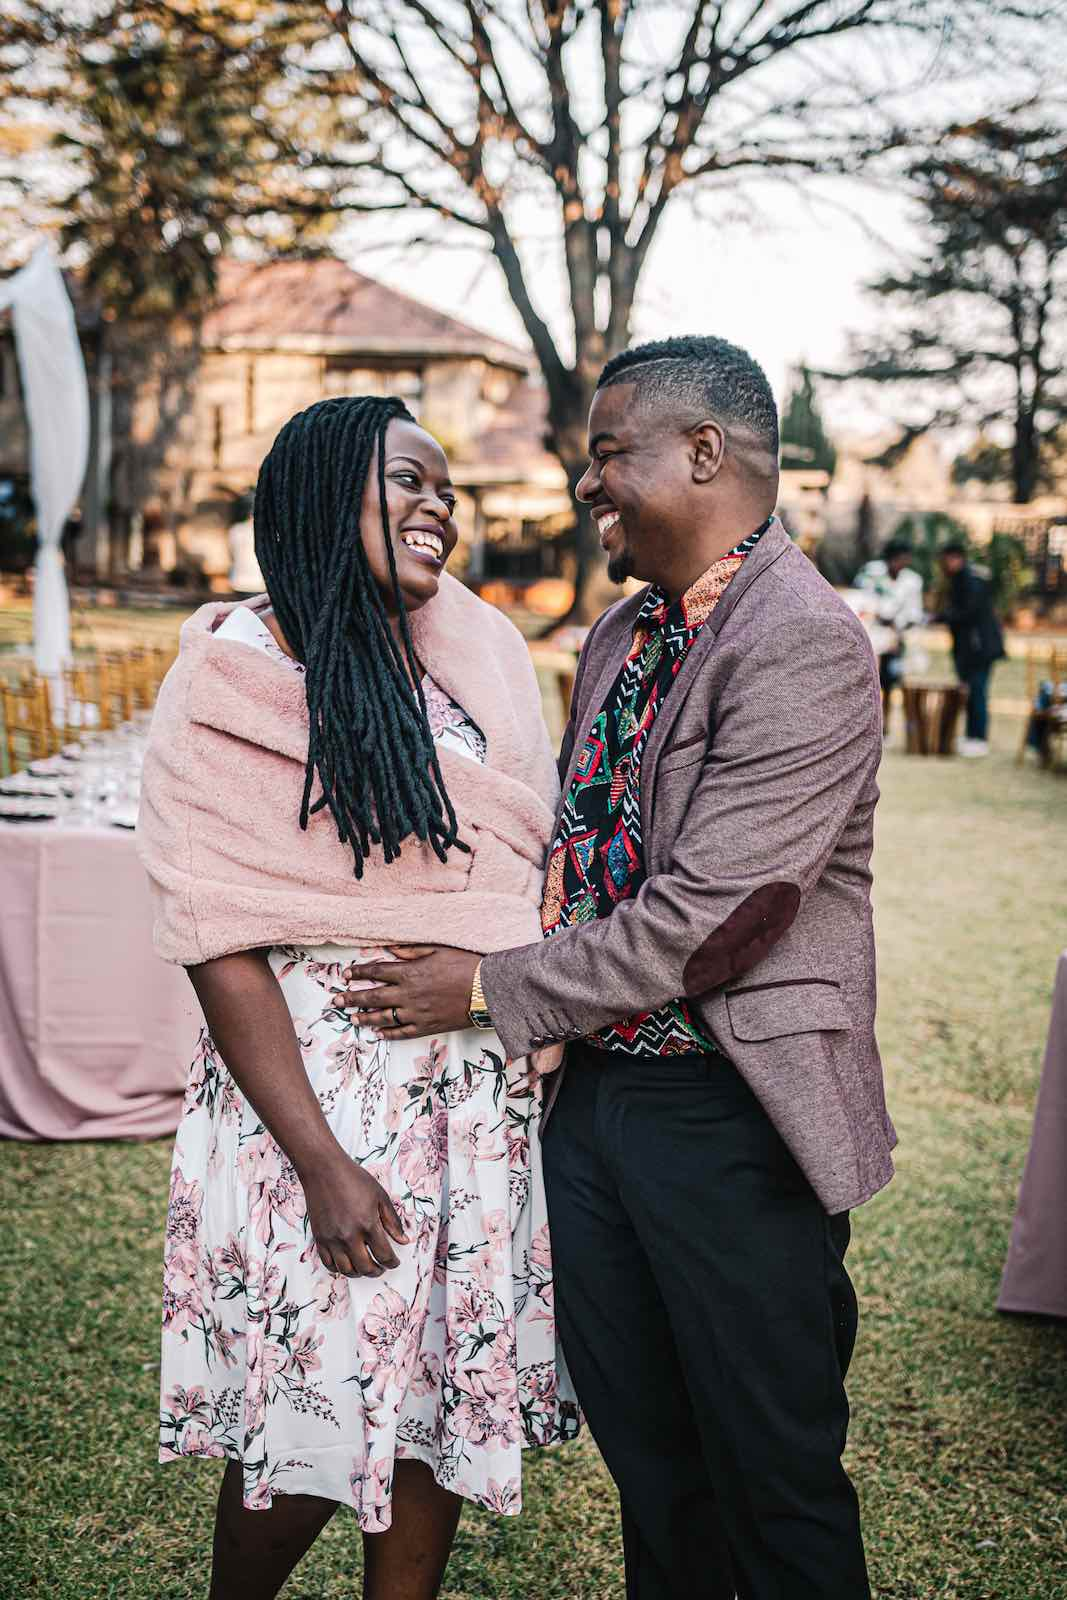 Effective first date tips ensure success with your first date, enabling you to make a great first impression and gain control from the outset.